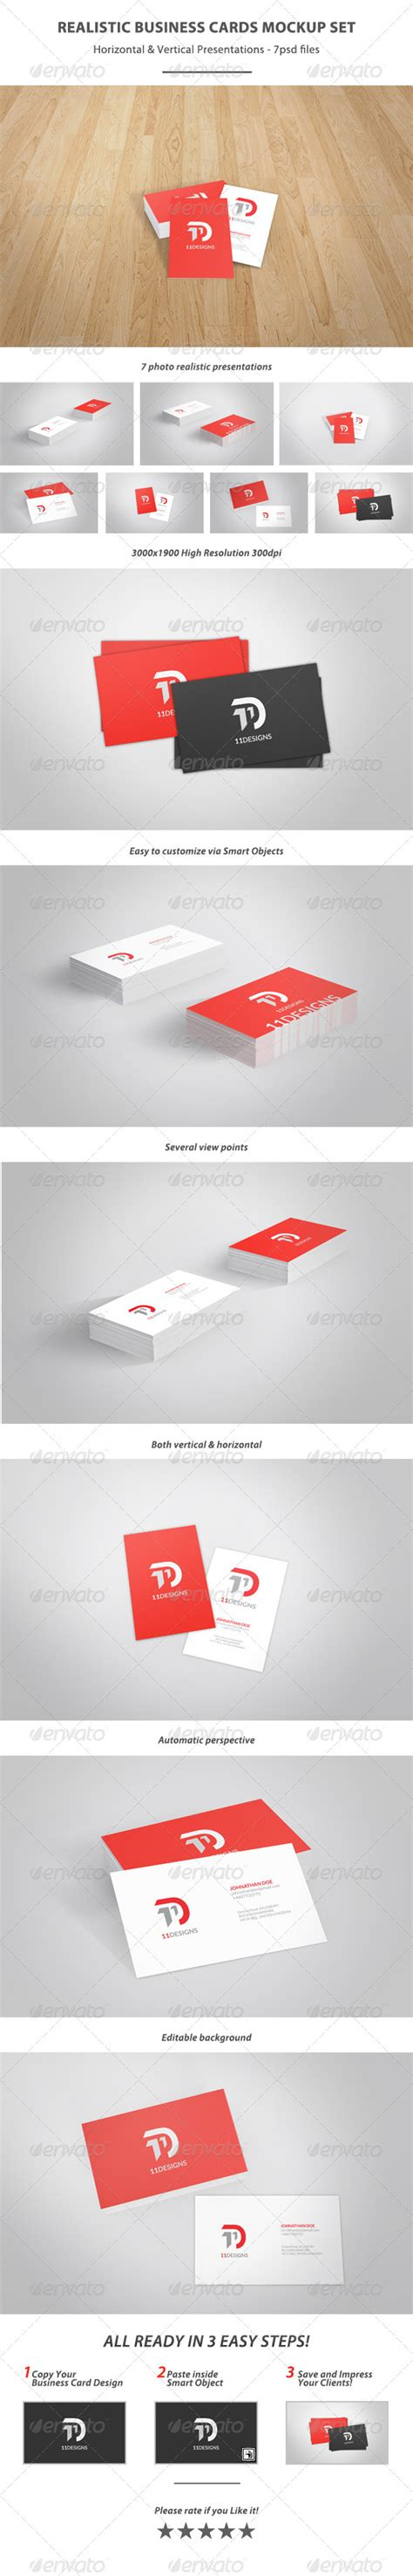 3 realistic business cards mockup templates realistic business card mockup set graphicriver